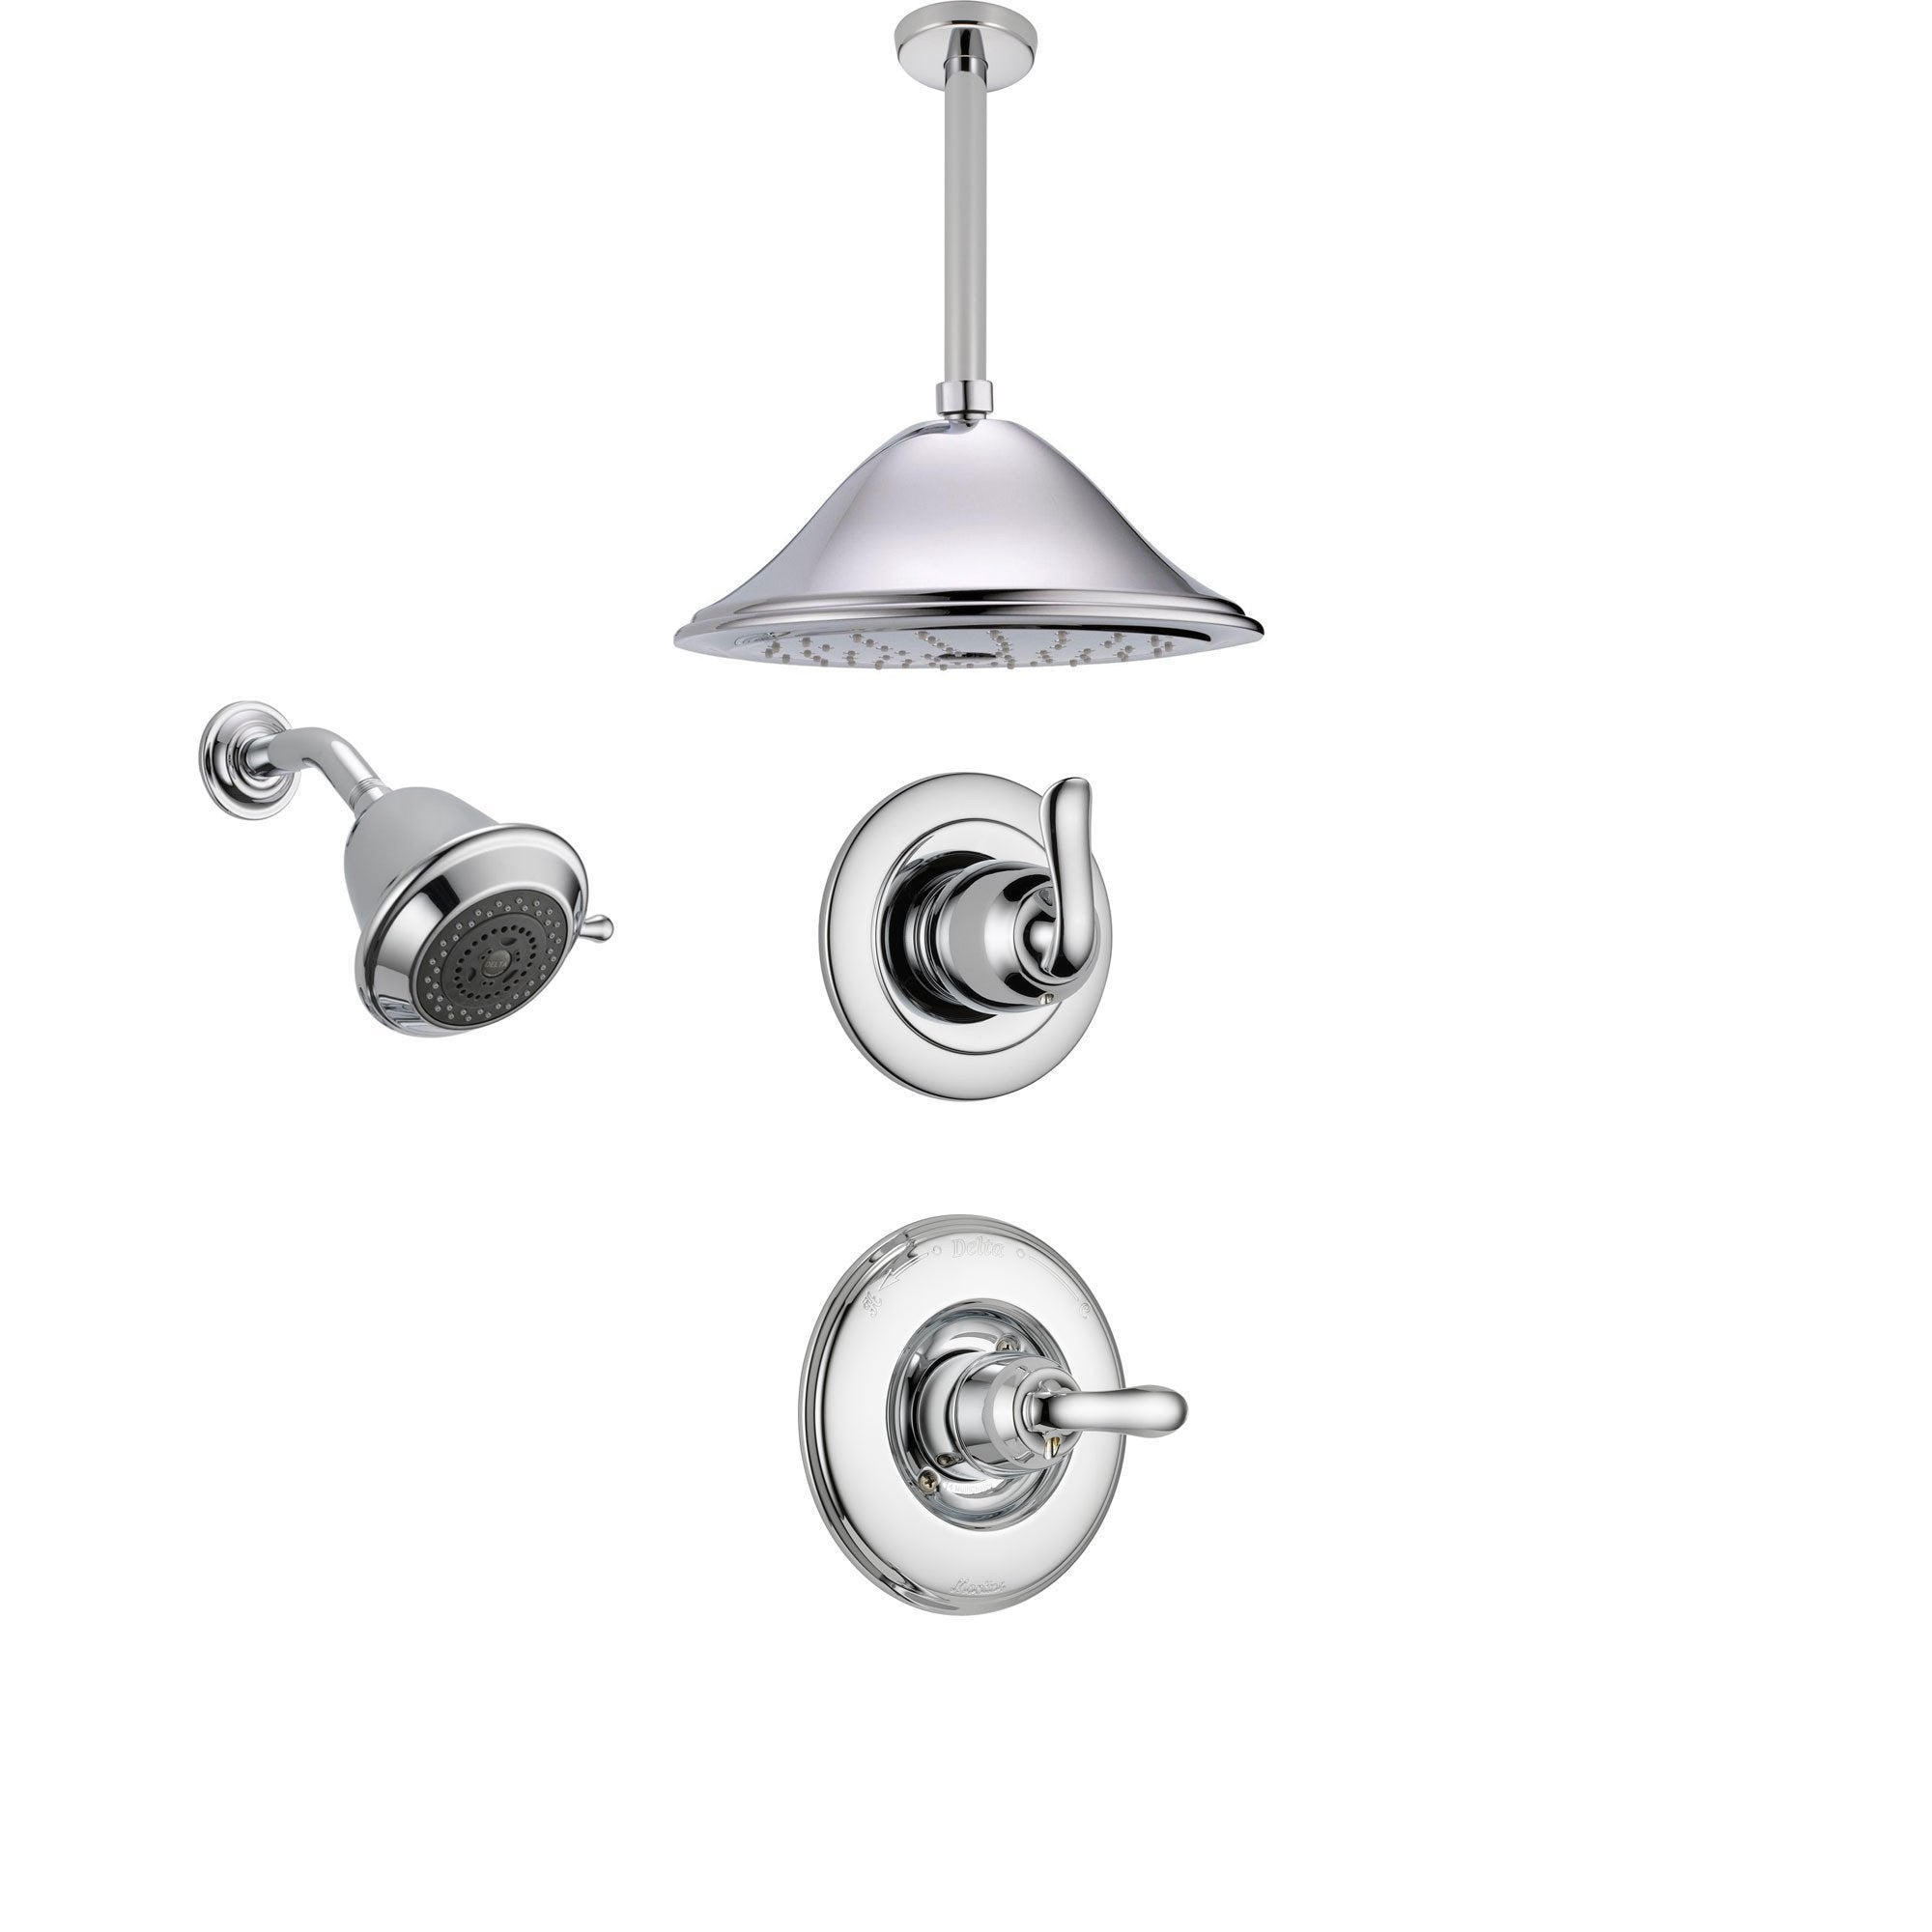 Delta Linden Chrome Shower System with Normal Shower Handle, 3-setting Diverter, Large Ceiling Mount Rain Showerhead, and Wall Mount Showerhead SS149485